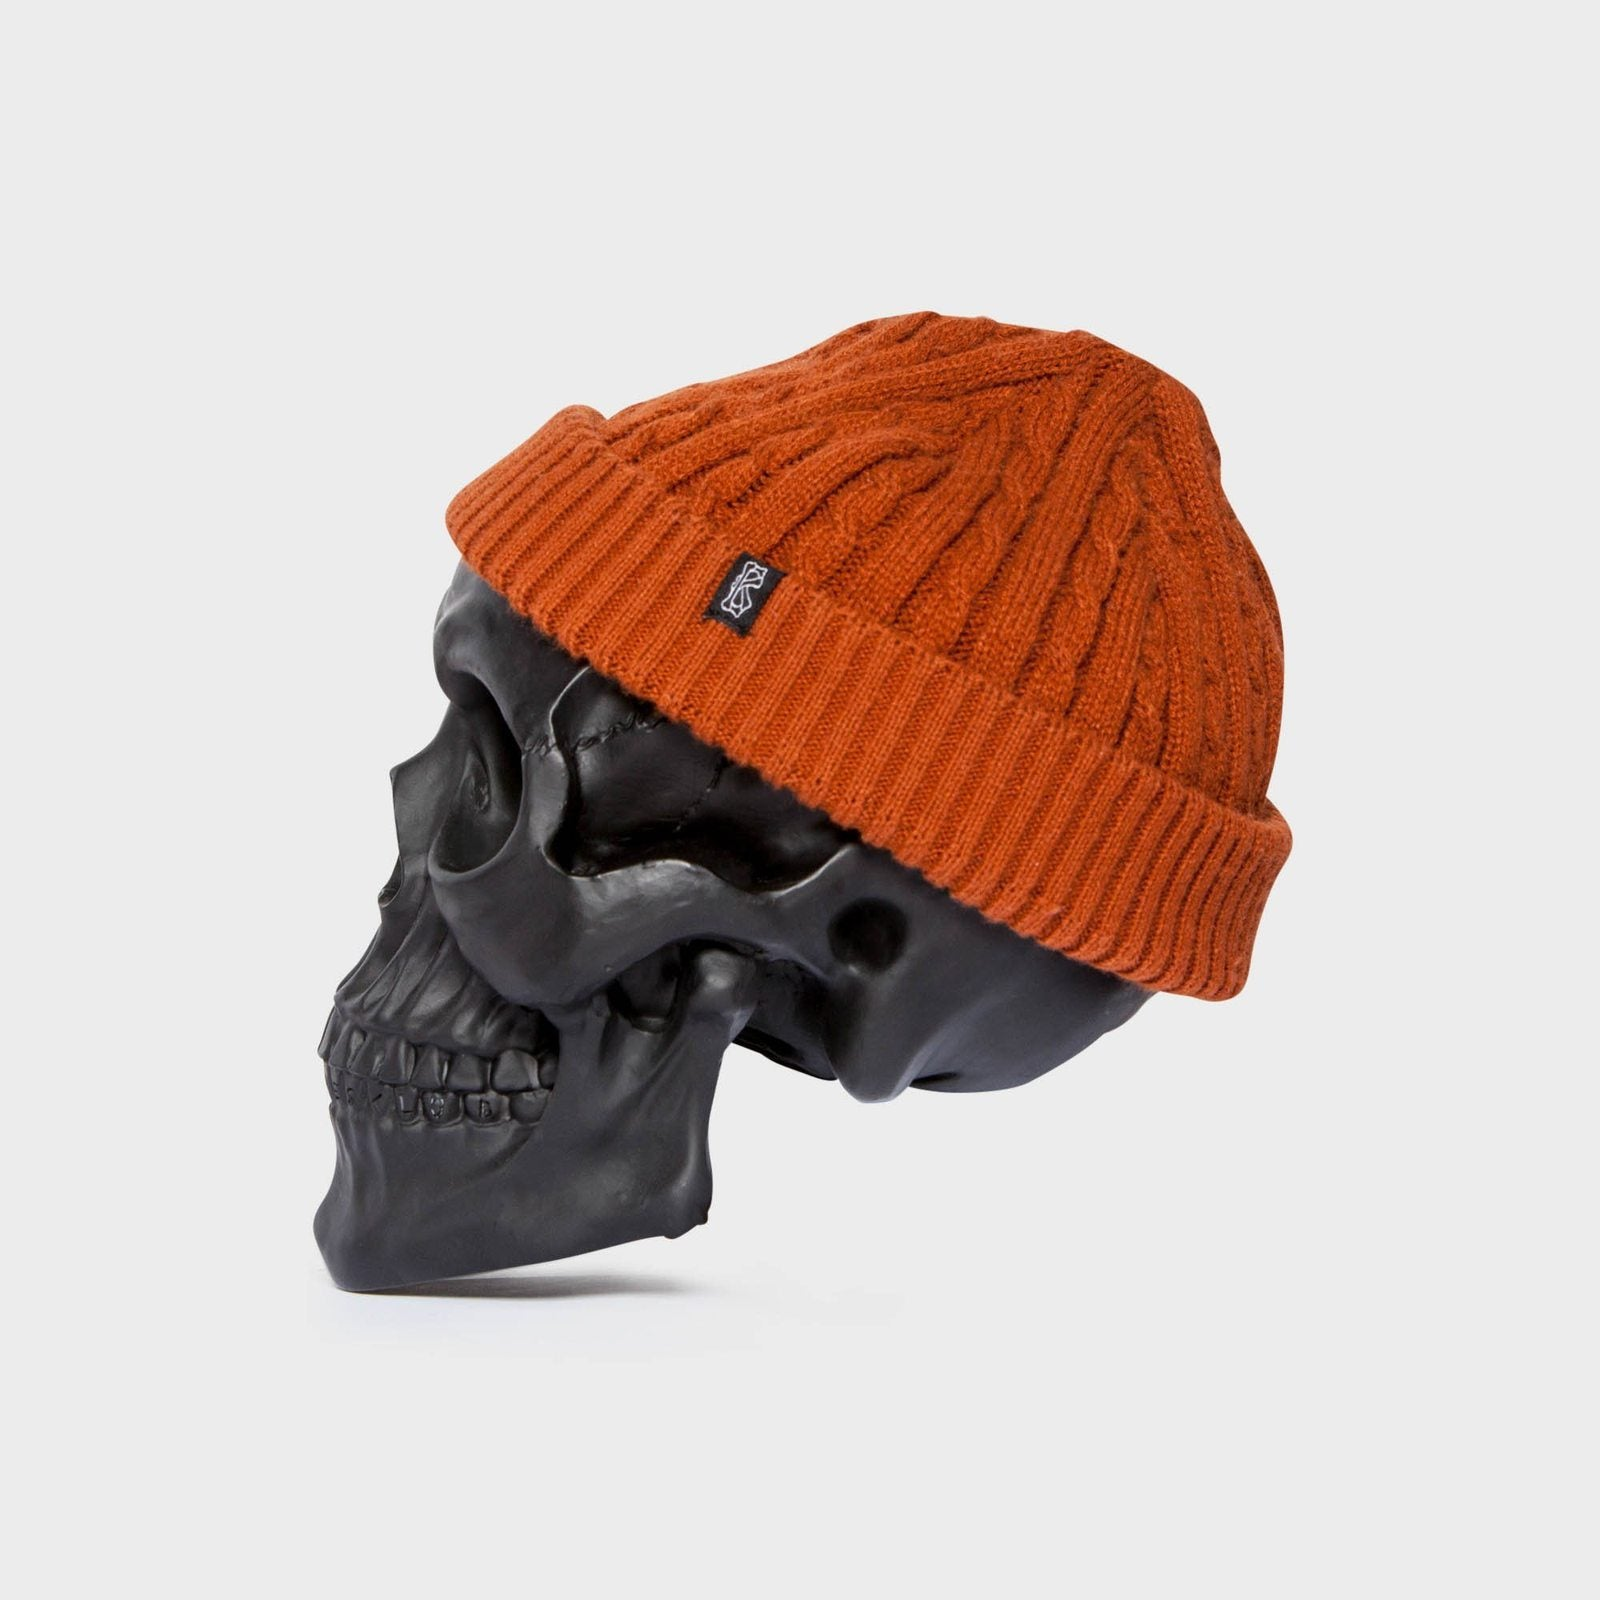 BILLY BONES  //  Fisherman Knit Beanie FITZROY